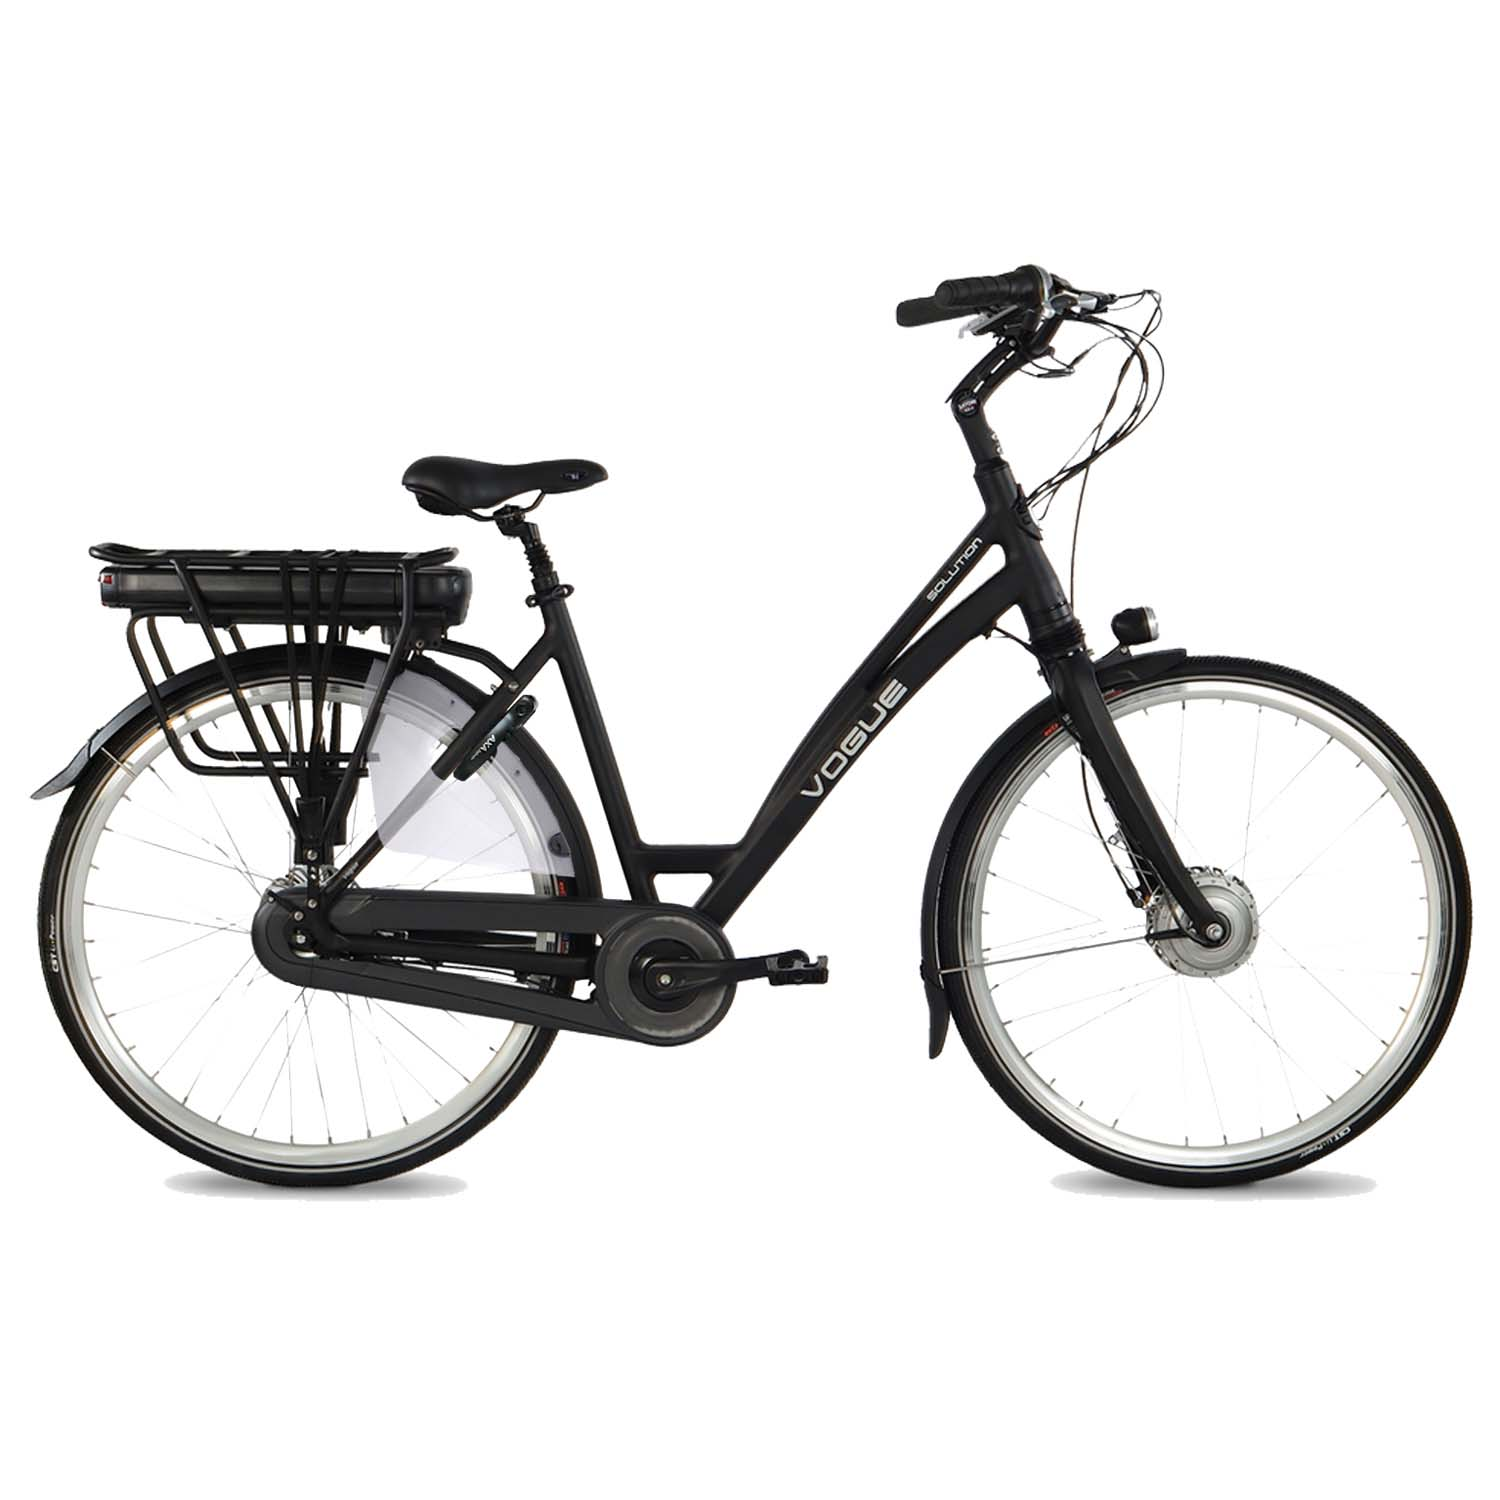 vogue-solution-elektrische-fiets-1.jpg